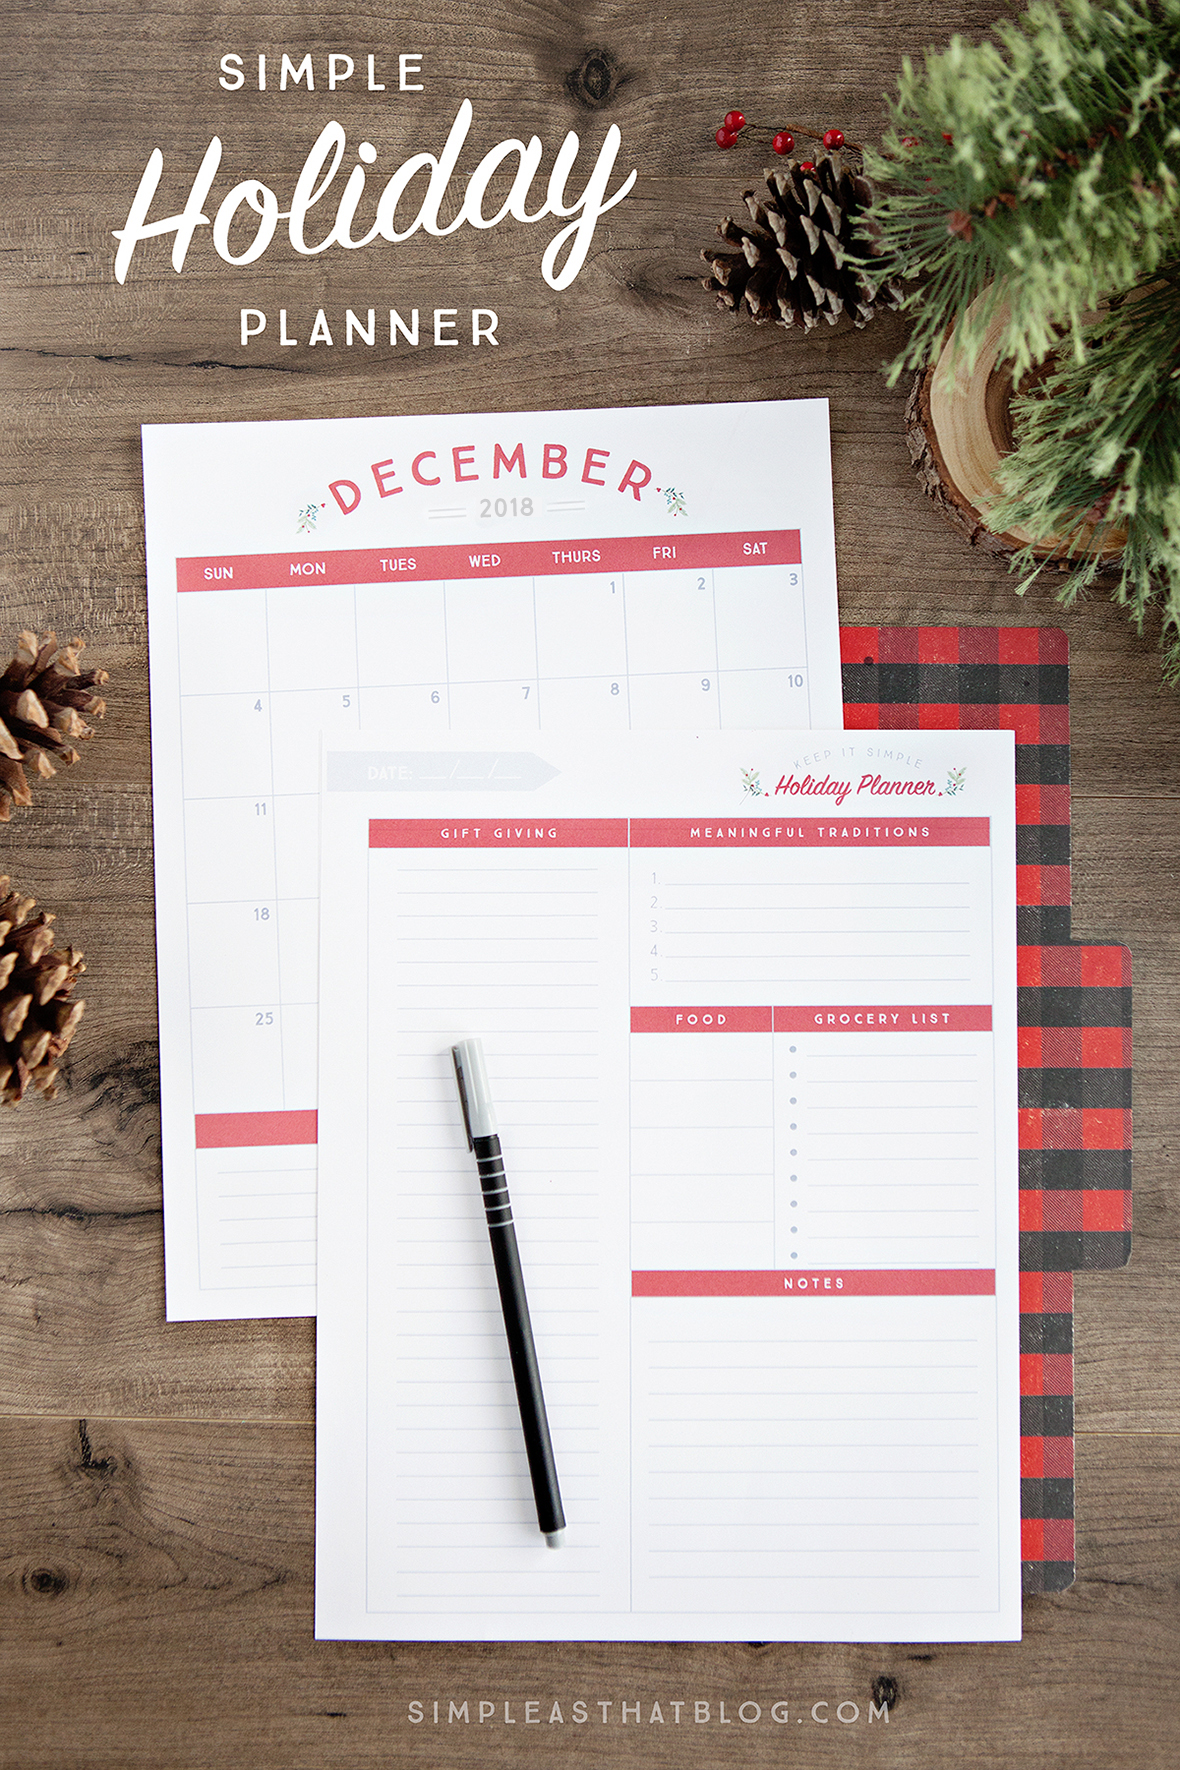 Planning early for the holidays is my secret to a calmer December. Whether it's gift giving, meal planning, or making time for your most meaningful traditions...  Creating the holiday season you really want starts with planning now using this Free Printable Holiday Planner.